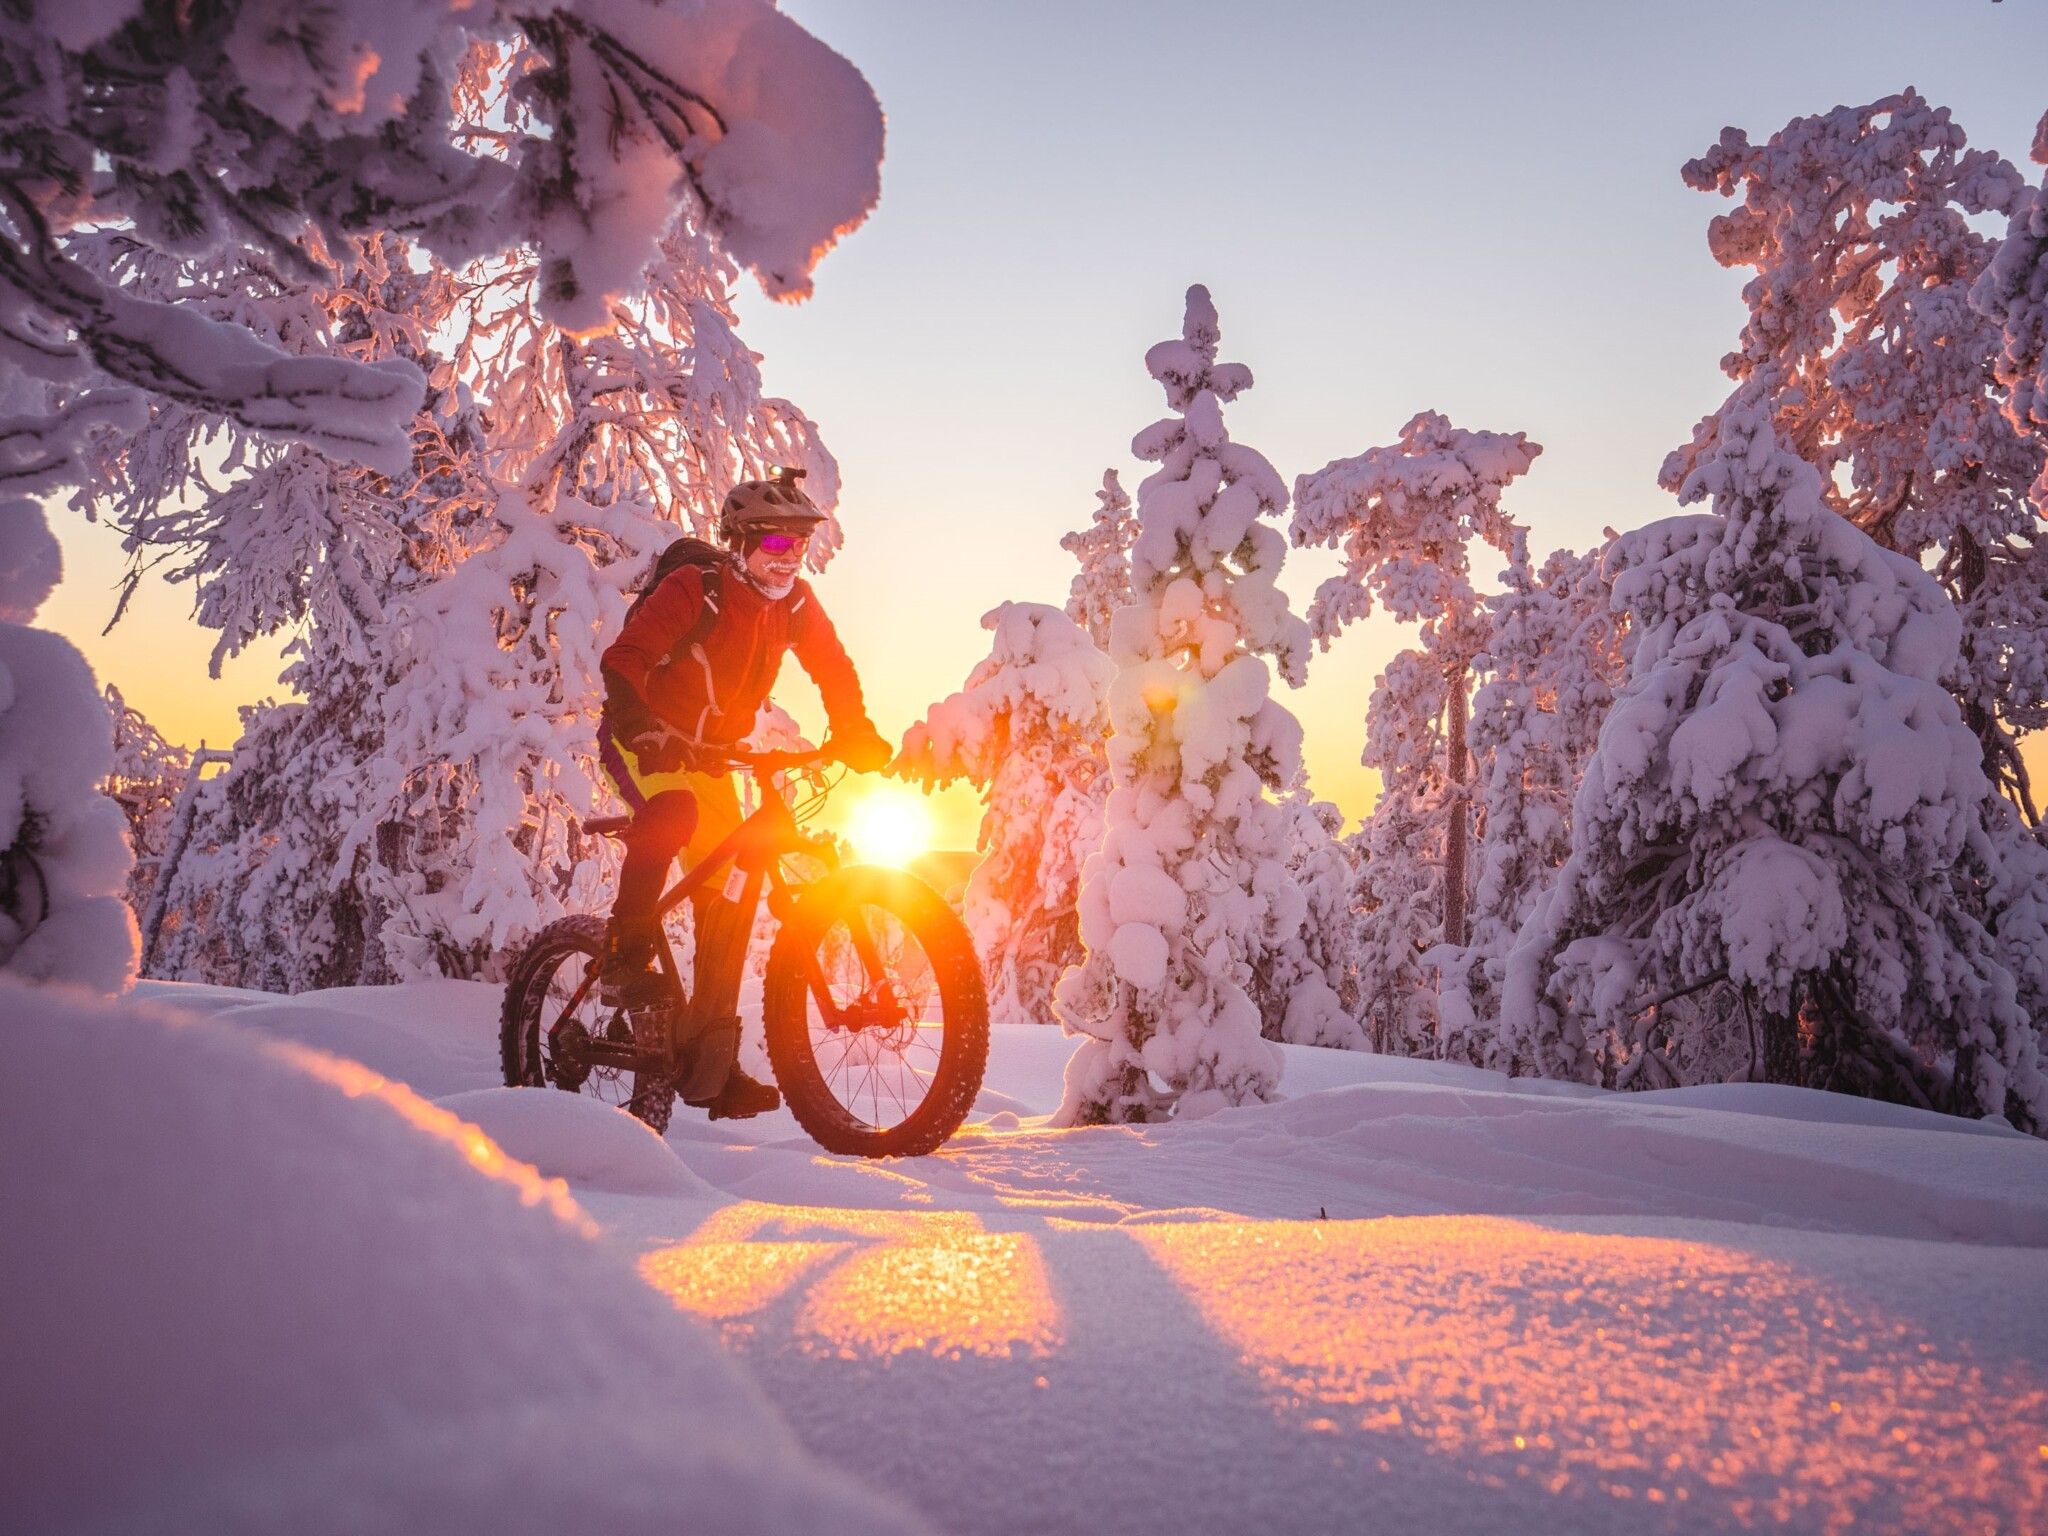 Fatbike Roll Outdoors, Rovaniemi, Lapland, Finland